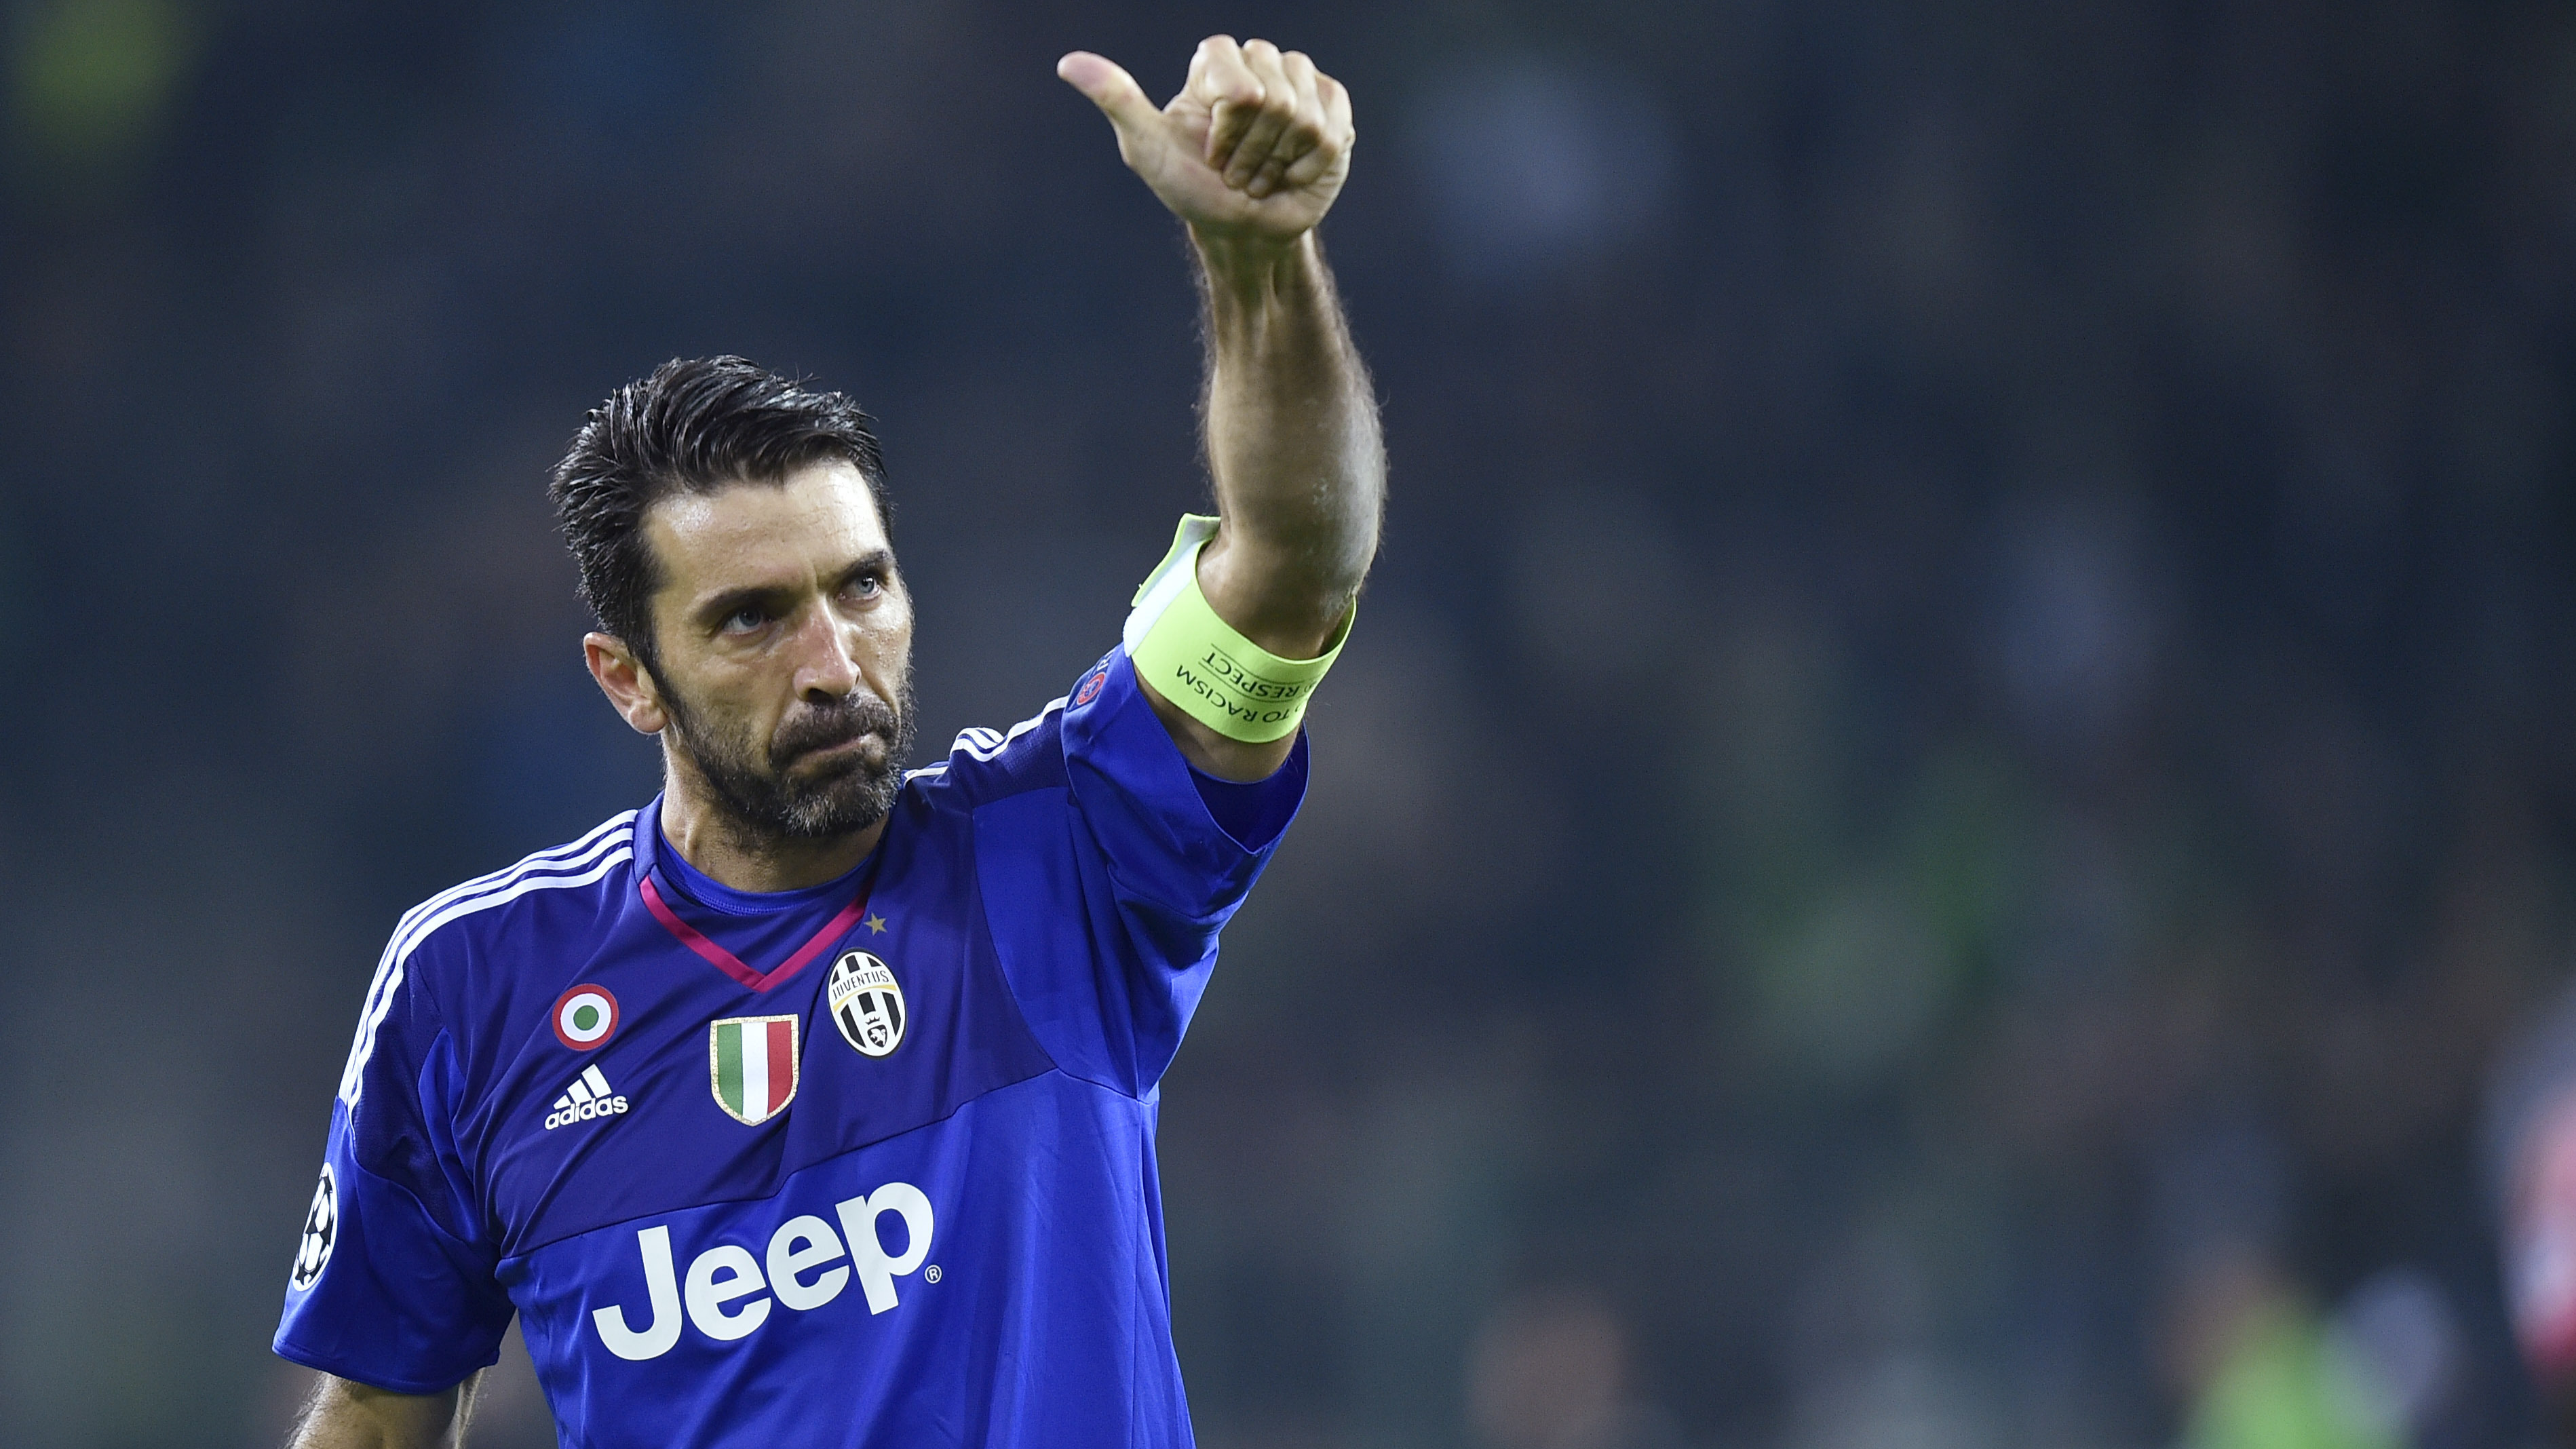 Juventus legend to return to club and play alongside Cristiano Ronaldo